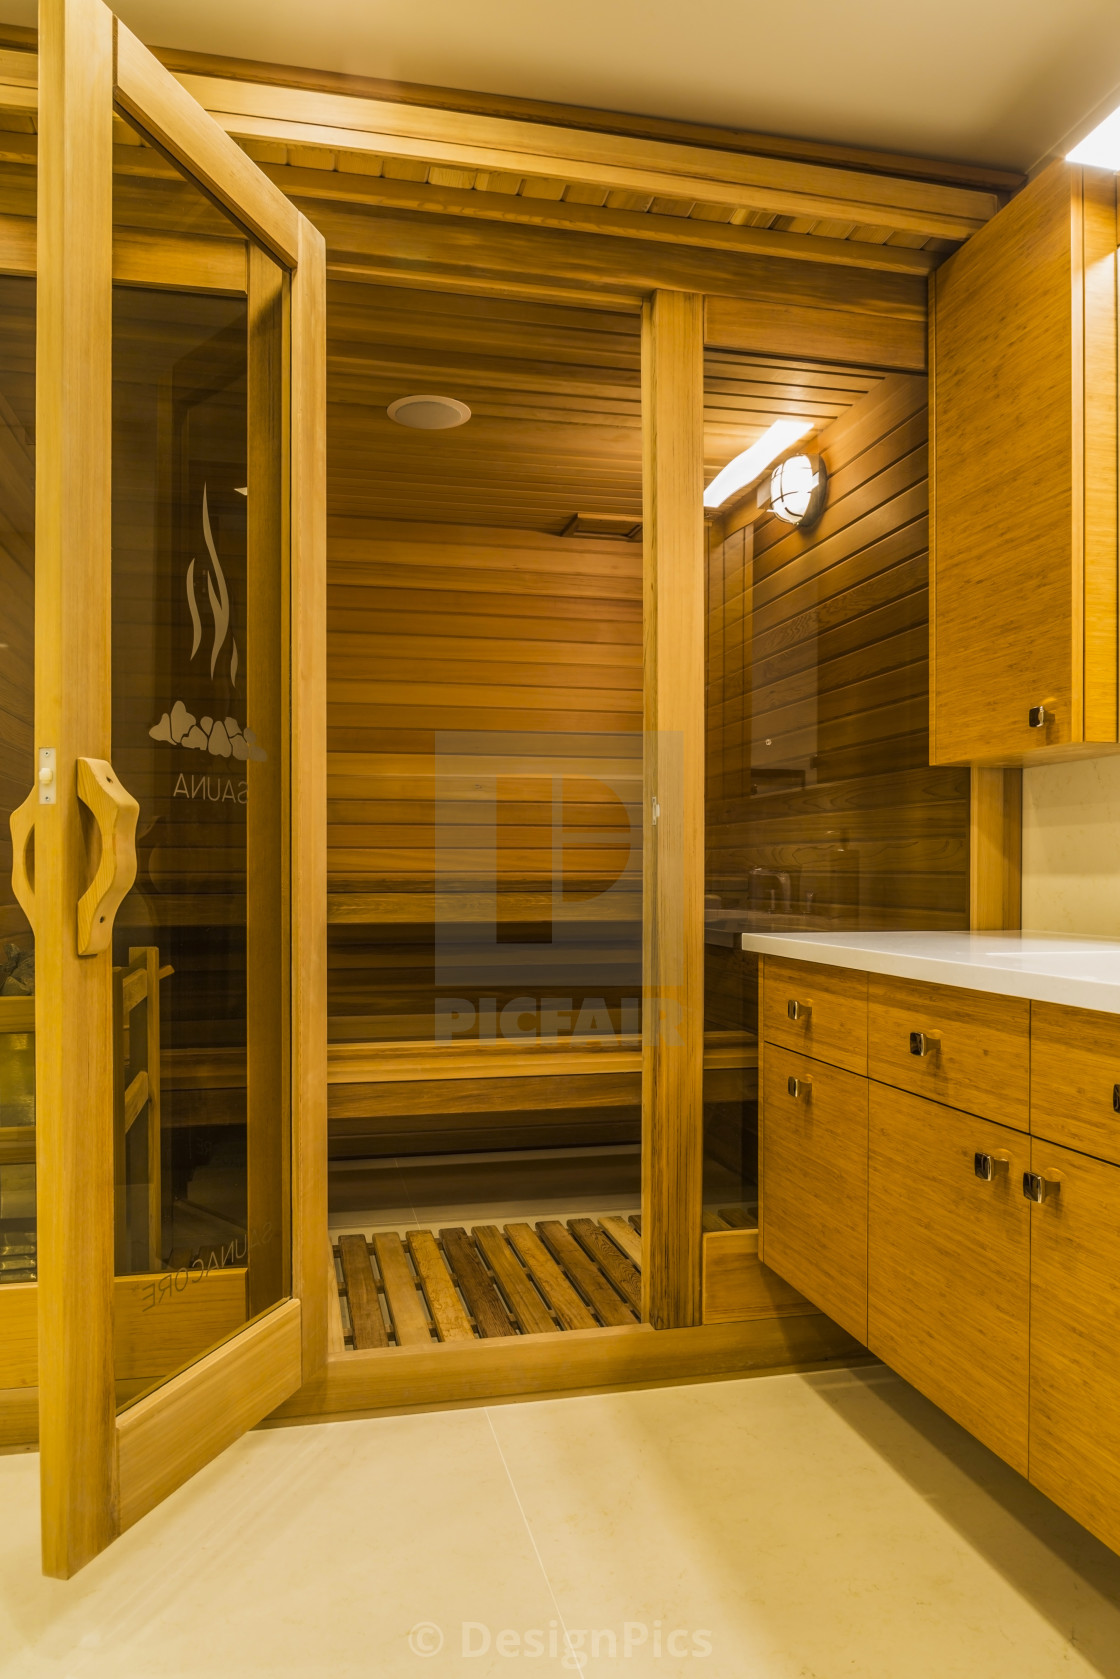 Sauna Room In Basement Bathroom With Bamboo Wood Vanity And White Marble License Download Or Print For 30 32 Photos Picfair